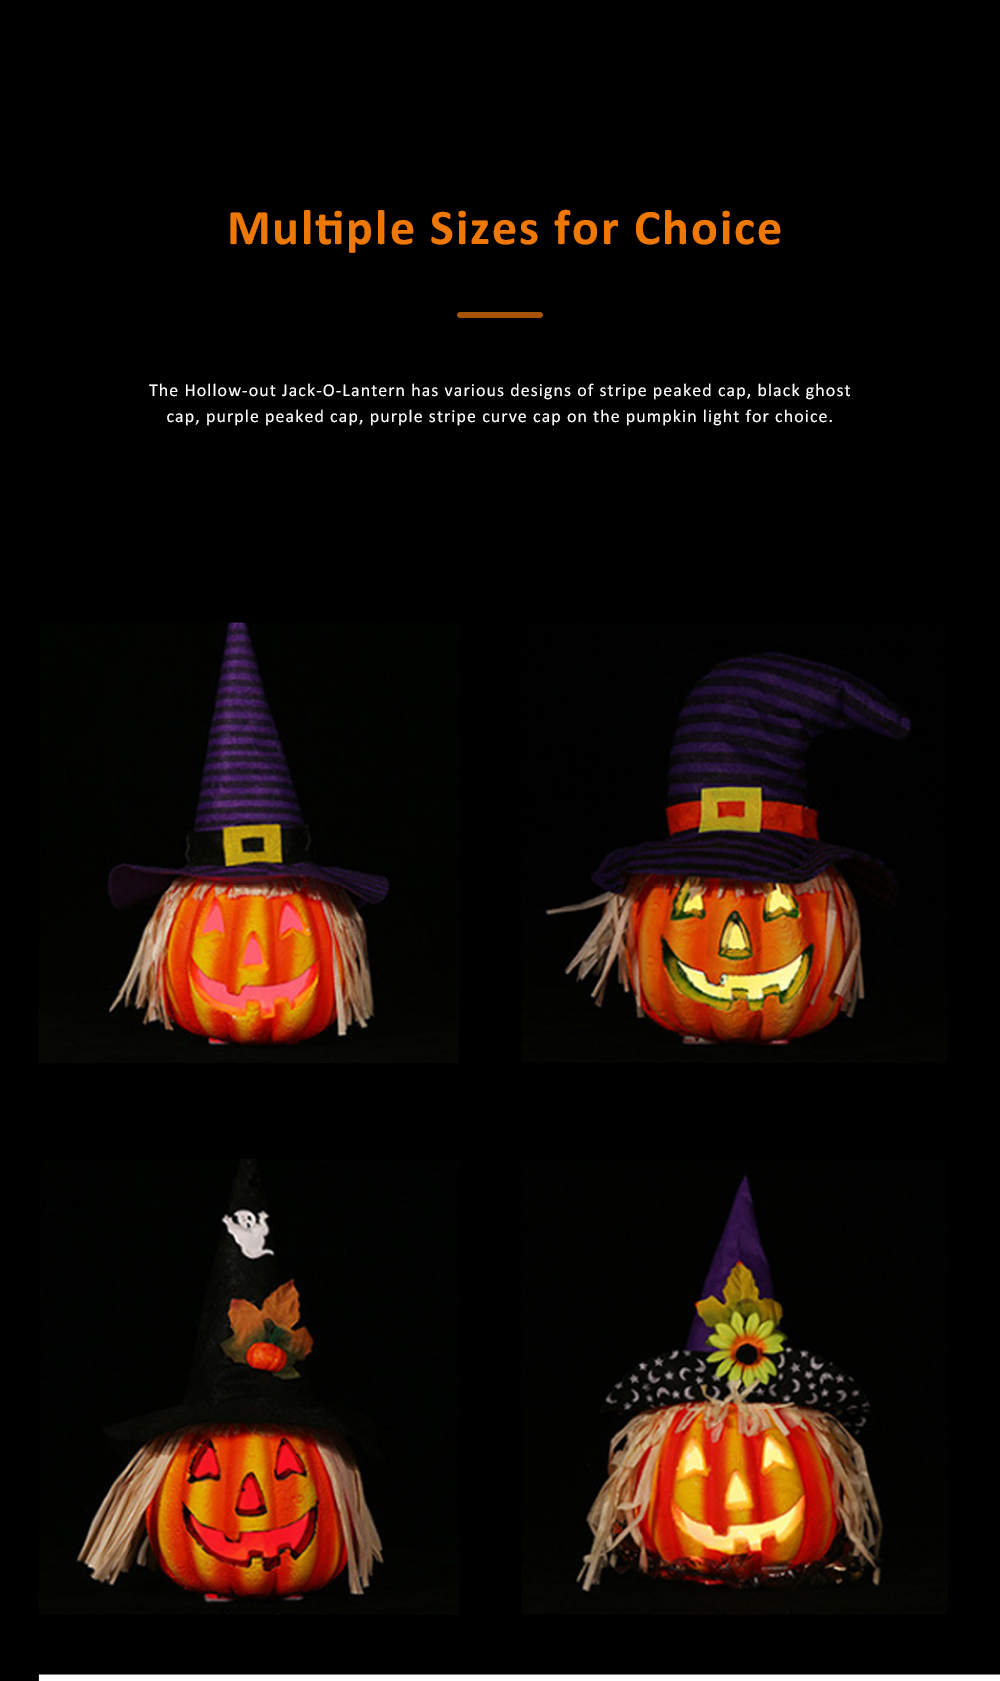 Hollow-out Jack-O-Lantern for Halloween Haunted House Foam-made Battery Driven Pumpkin Light Smiling Face Pumpkin Lamp 4